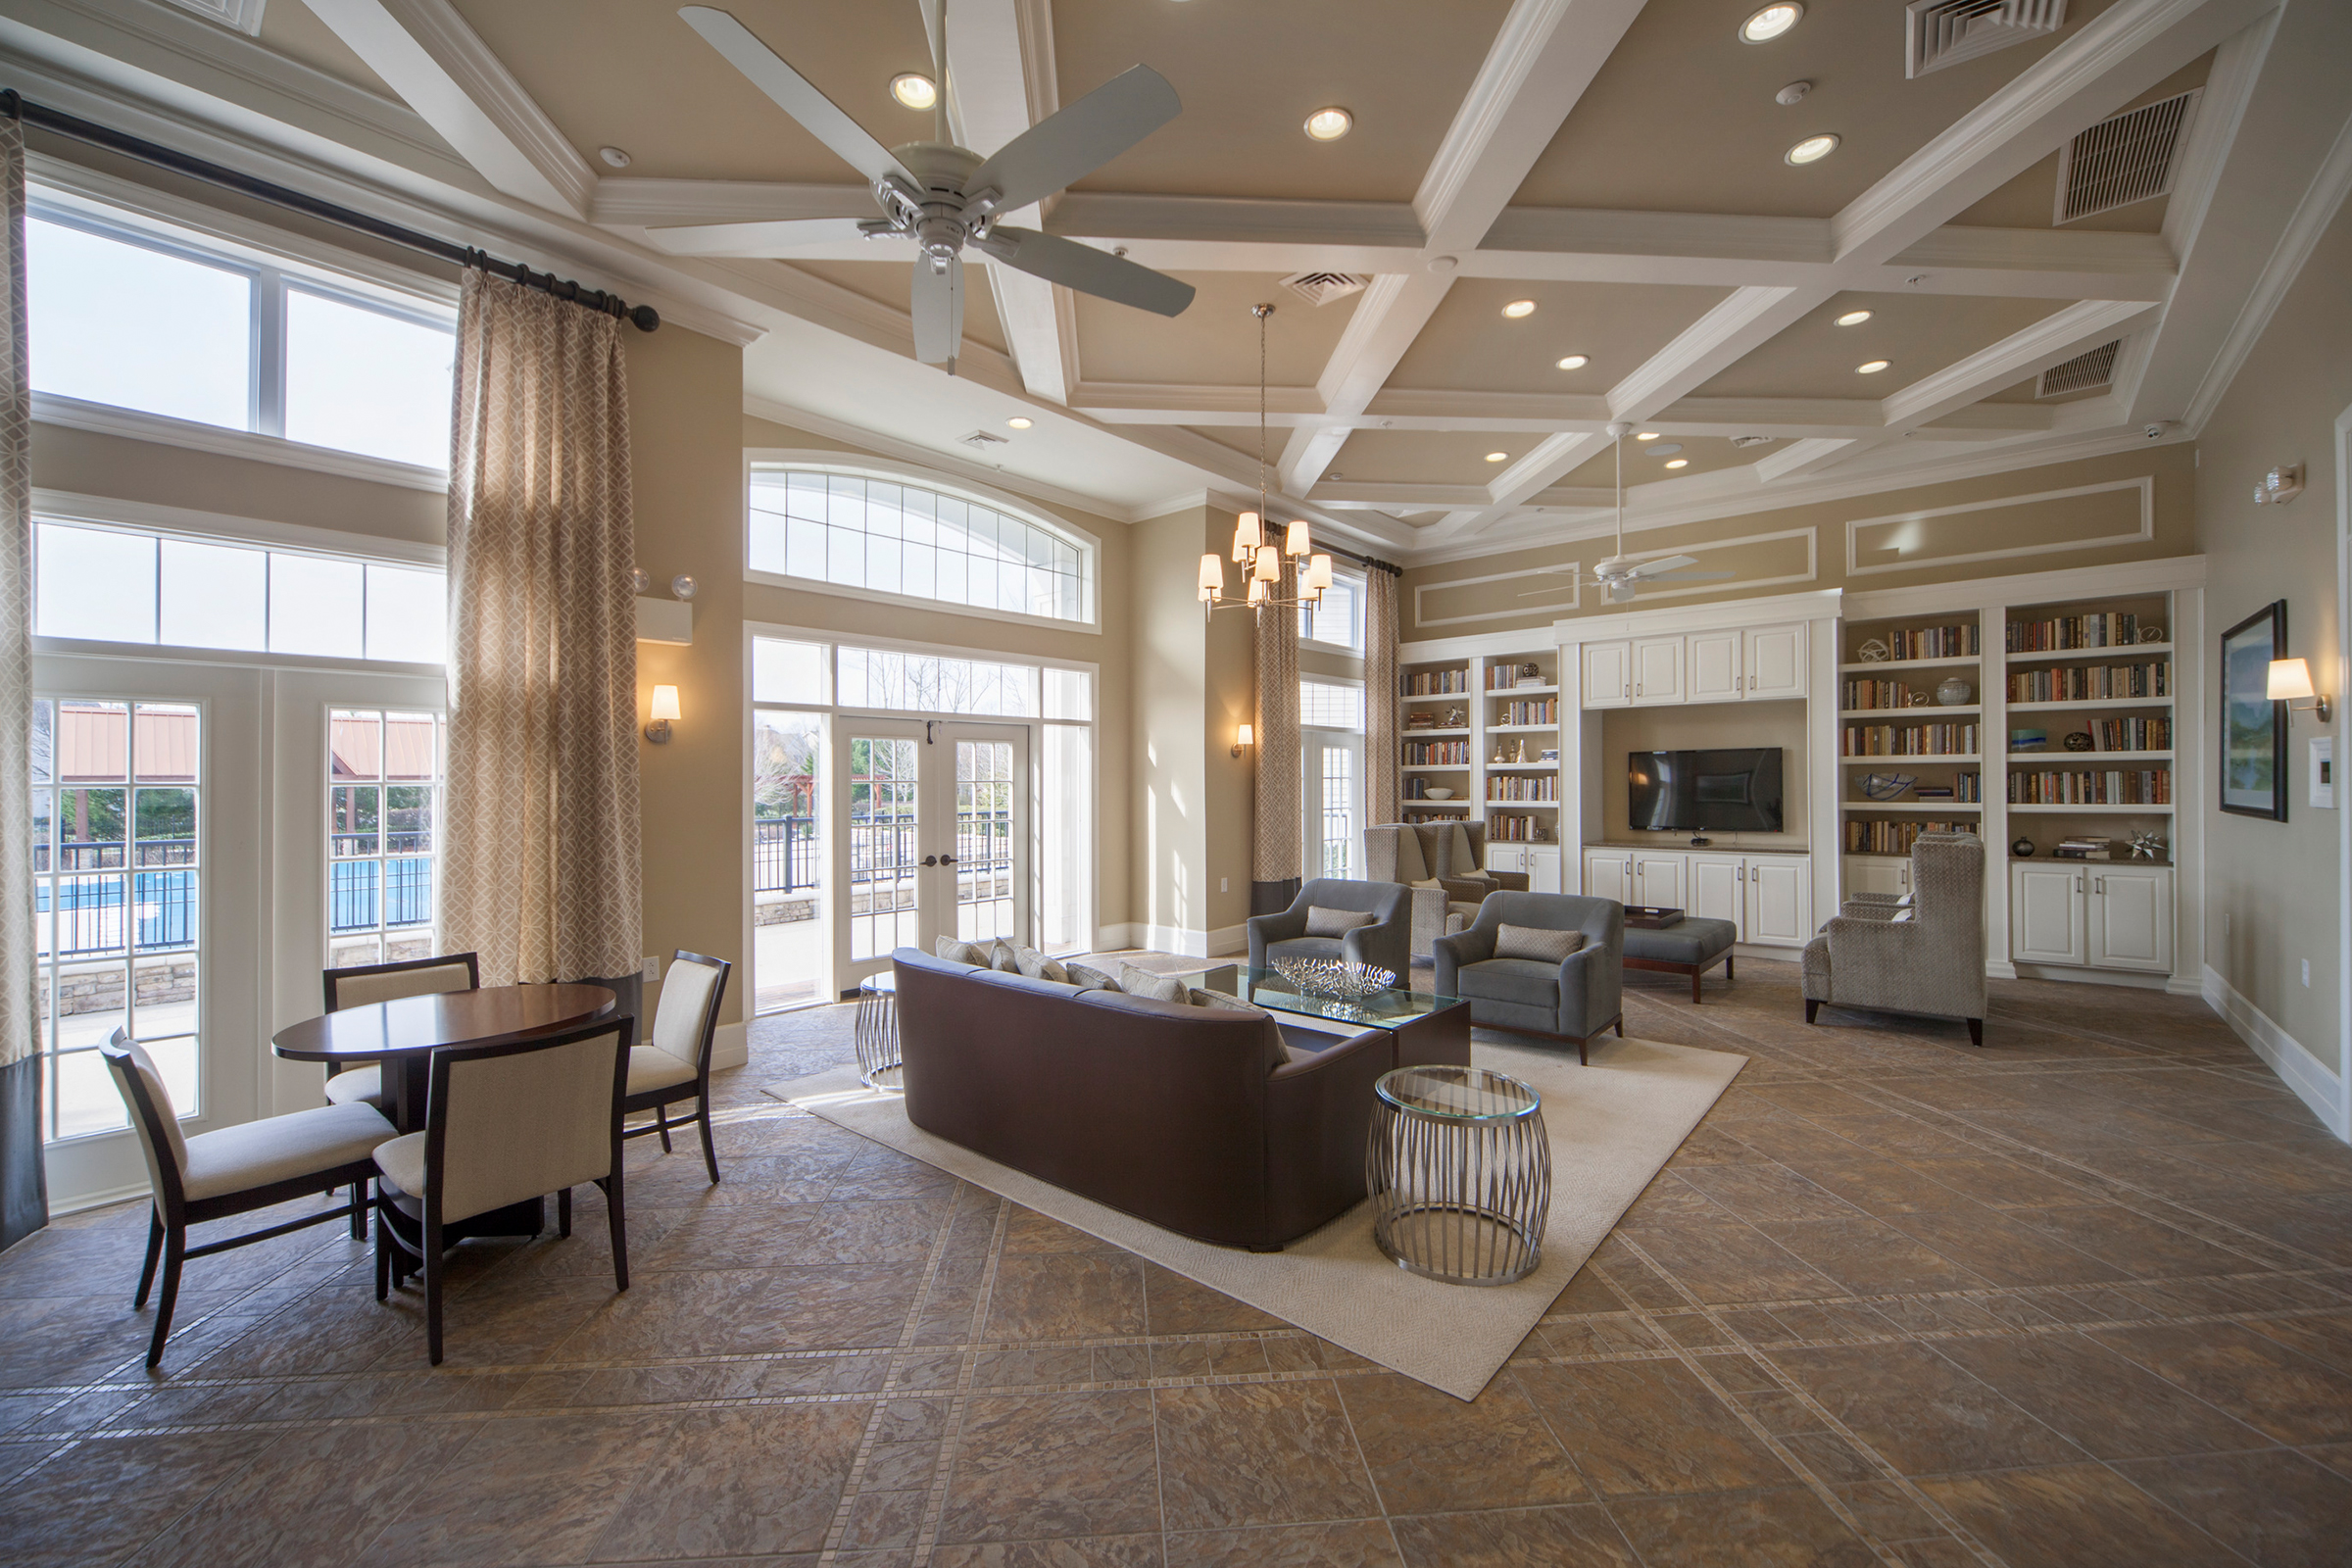 The clubhouse with contemporary decor, high ceilings, and natural light.